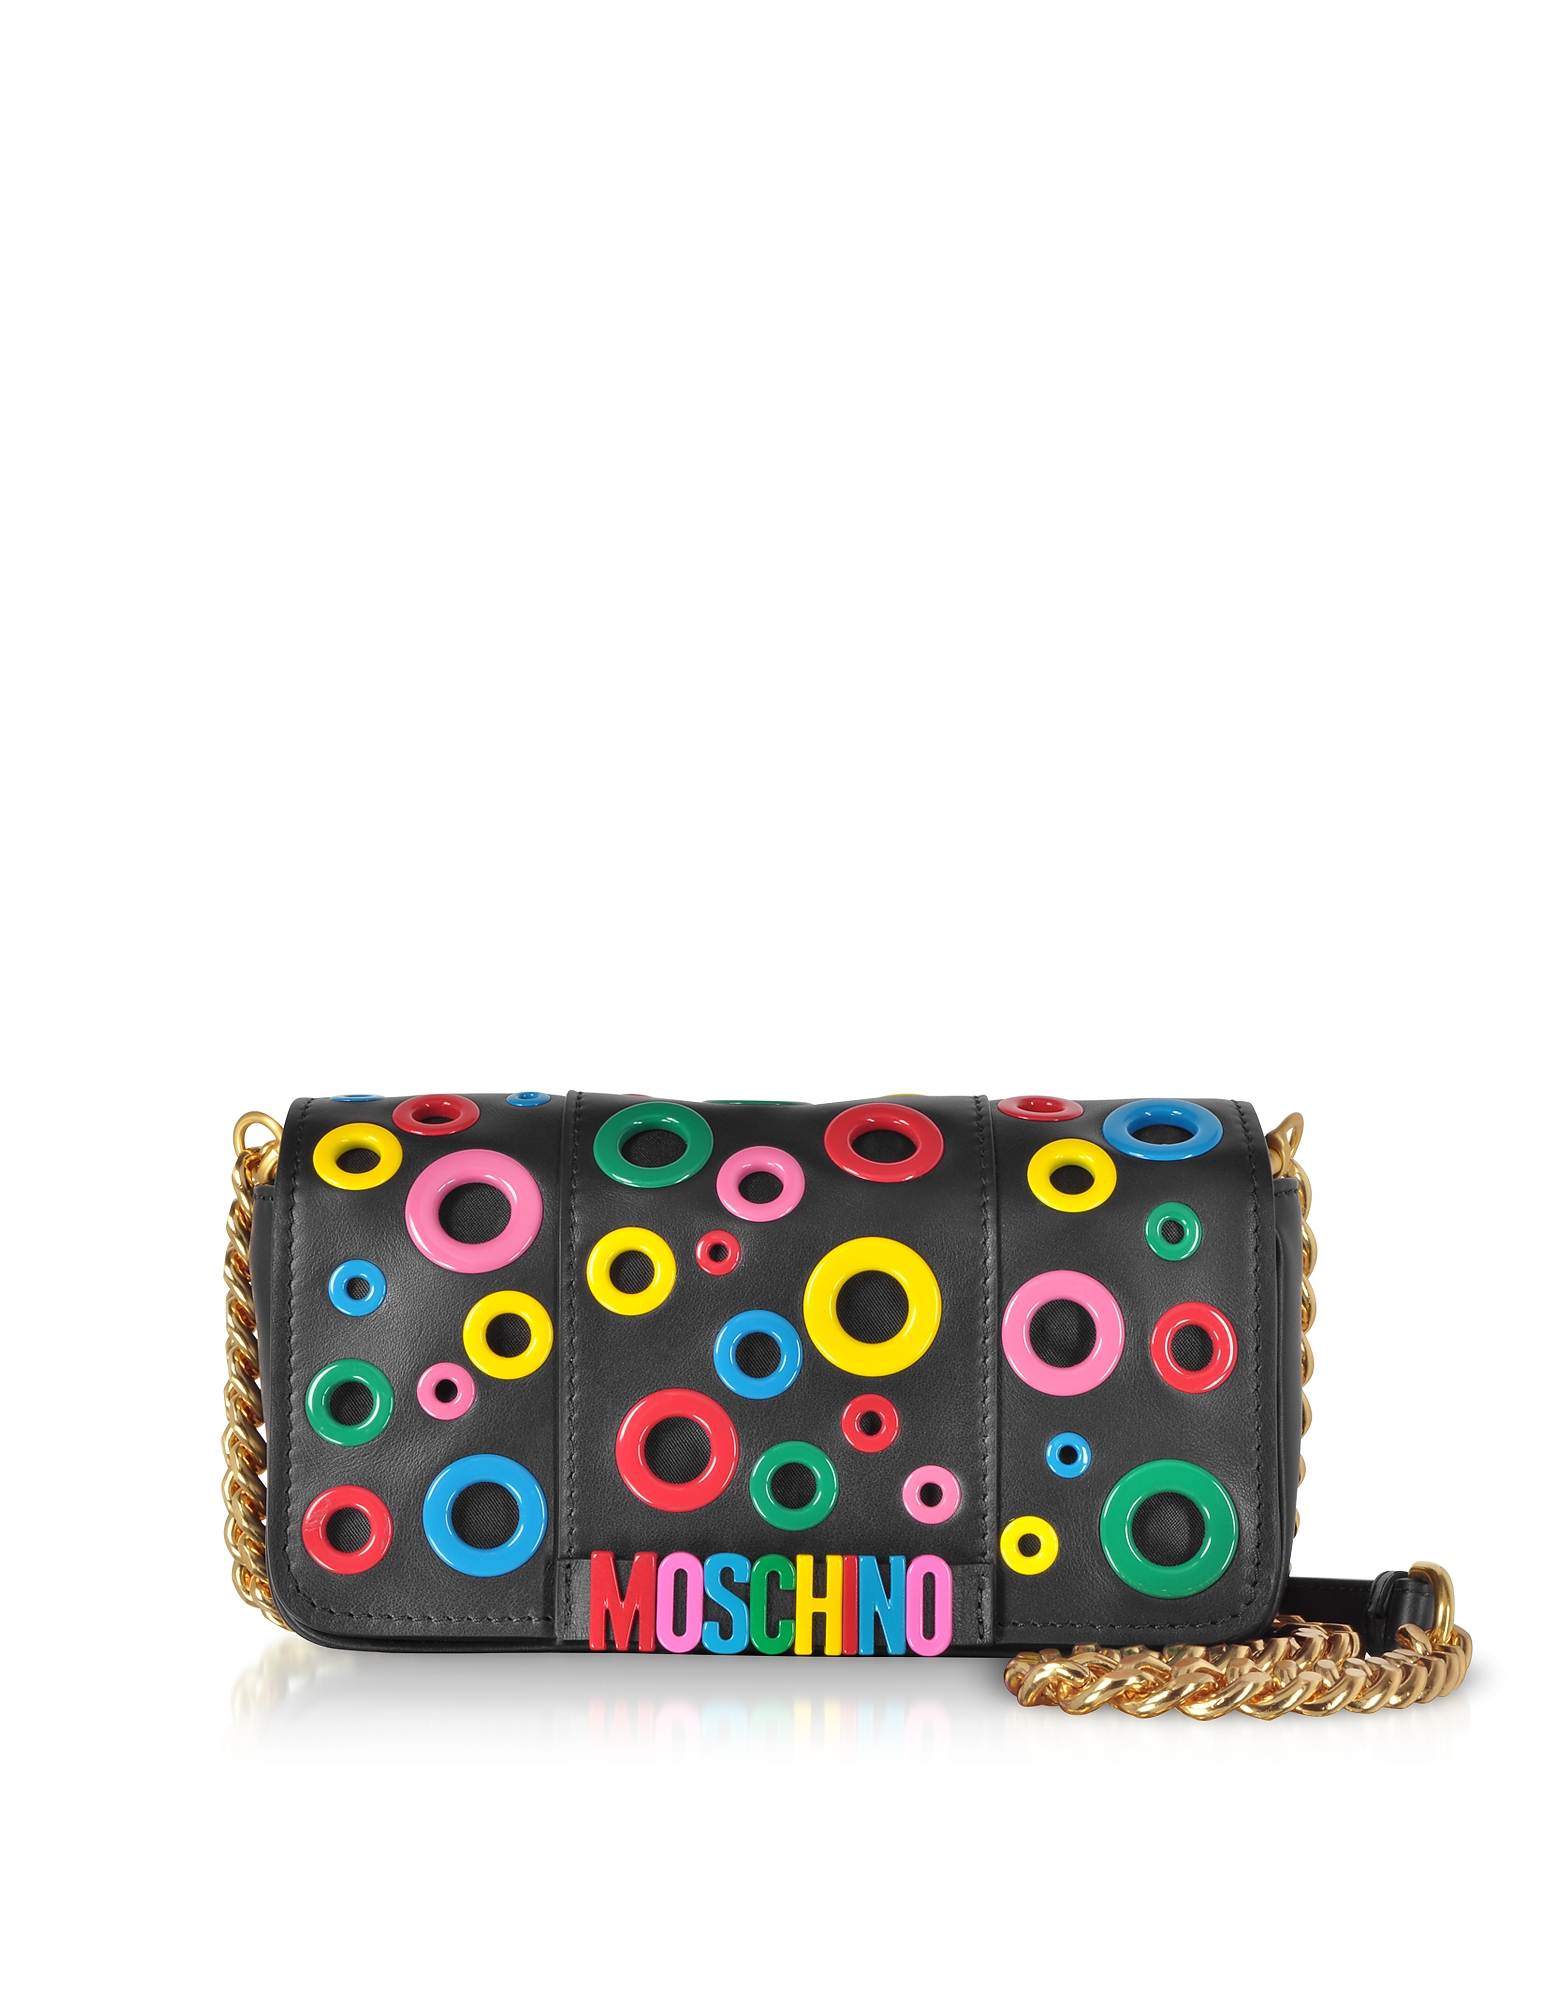 Moschino Handbags, Leather Multicolor Eyelets Shoulder Bag